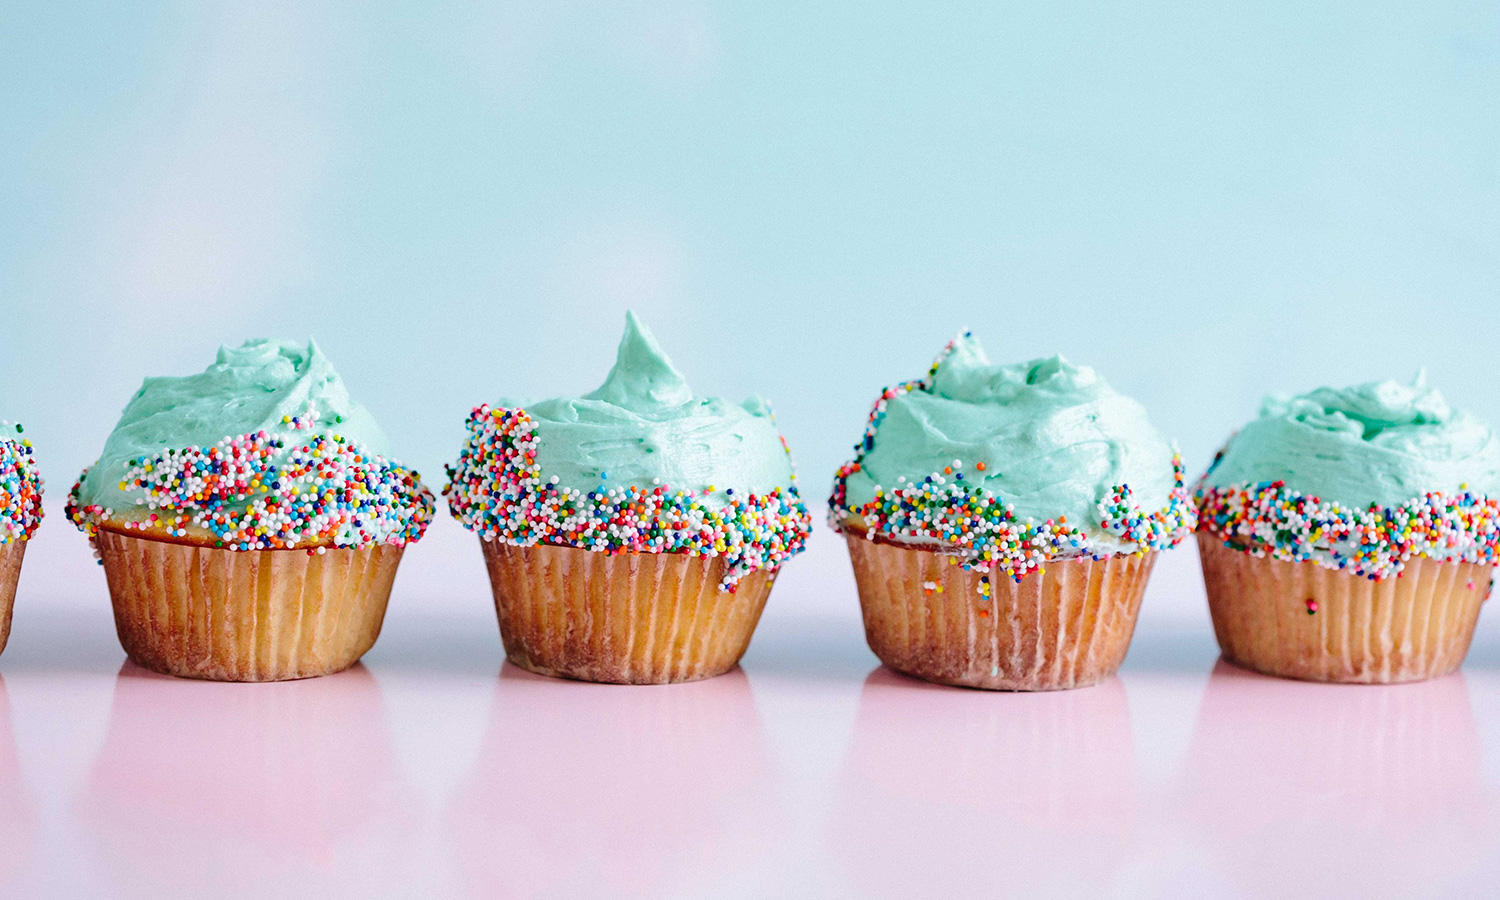 Colorful Cupcakes Decorates with Sprinkles